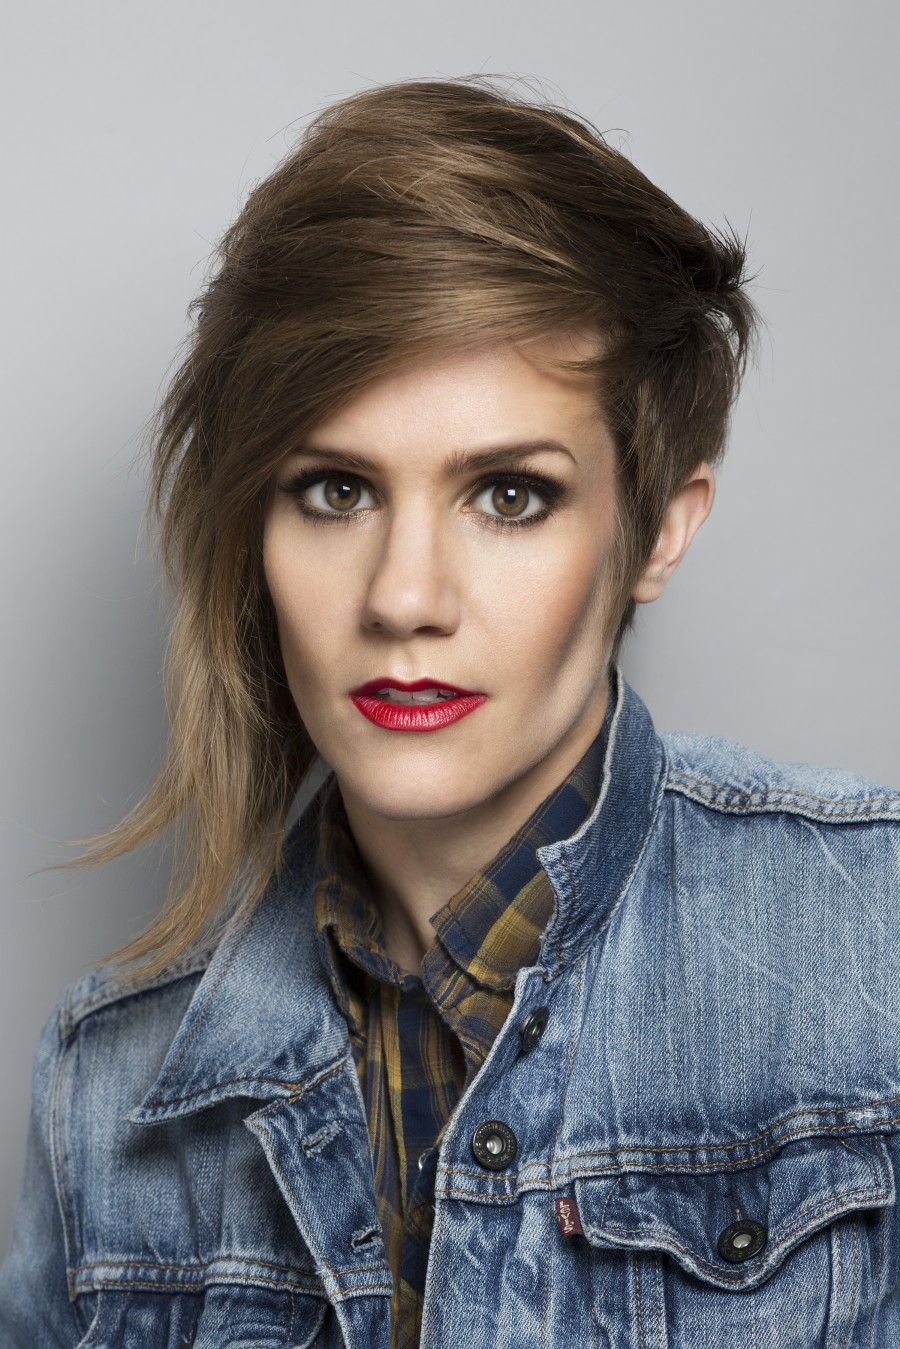 A photo of comedian Cameron Esposito